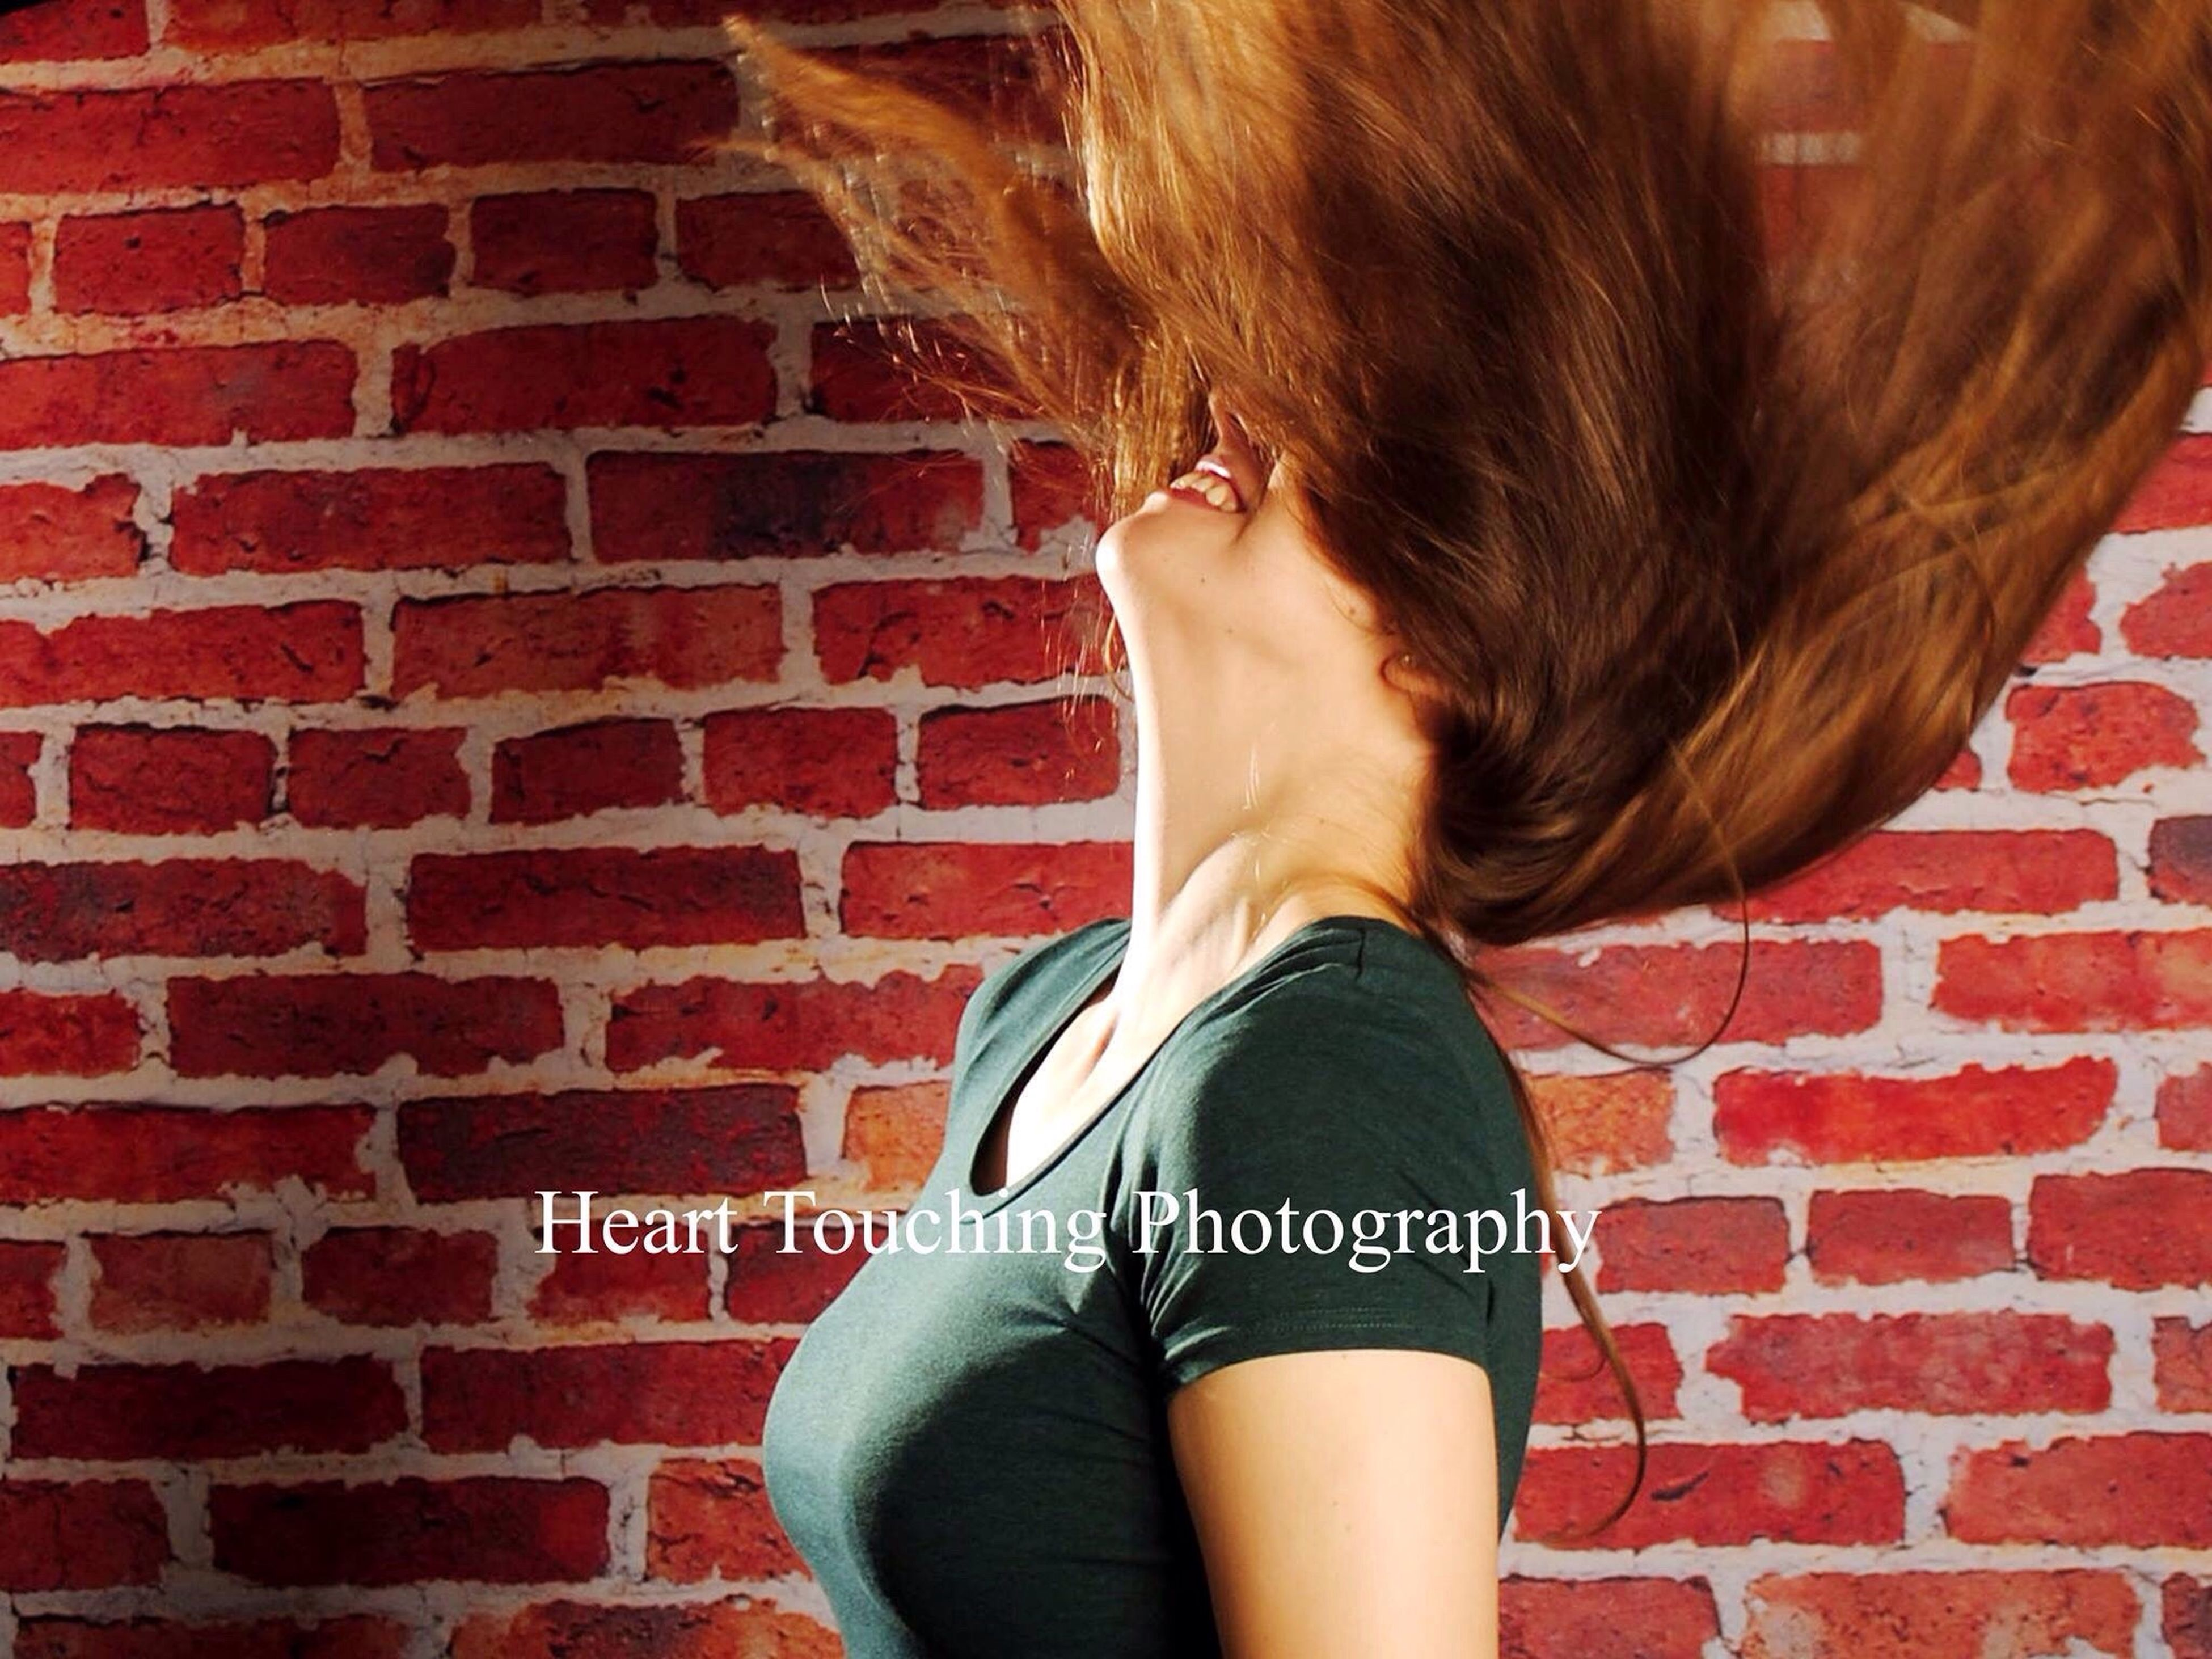 brick wall, wall - building feature, standing, casual clothing, red, outdoors, person